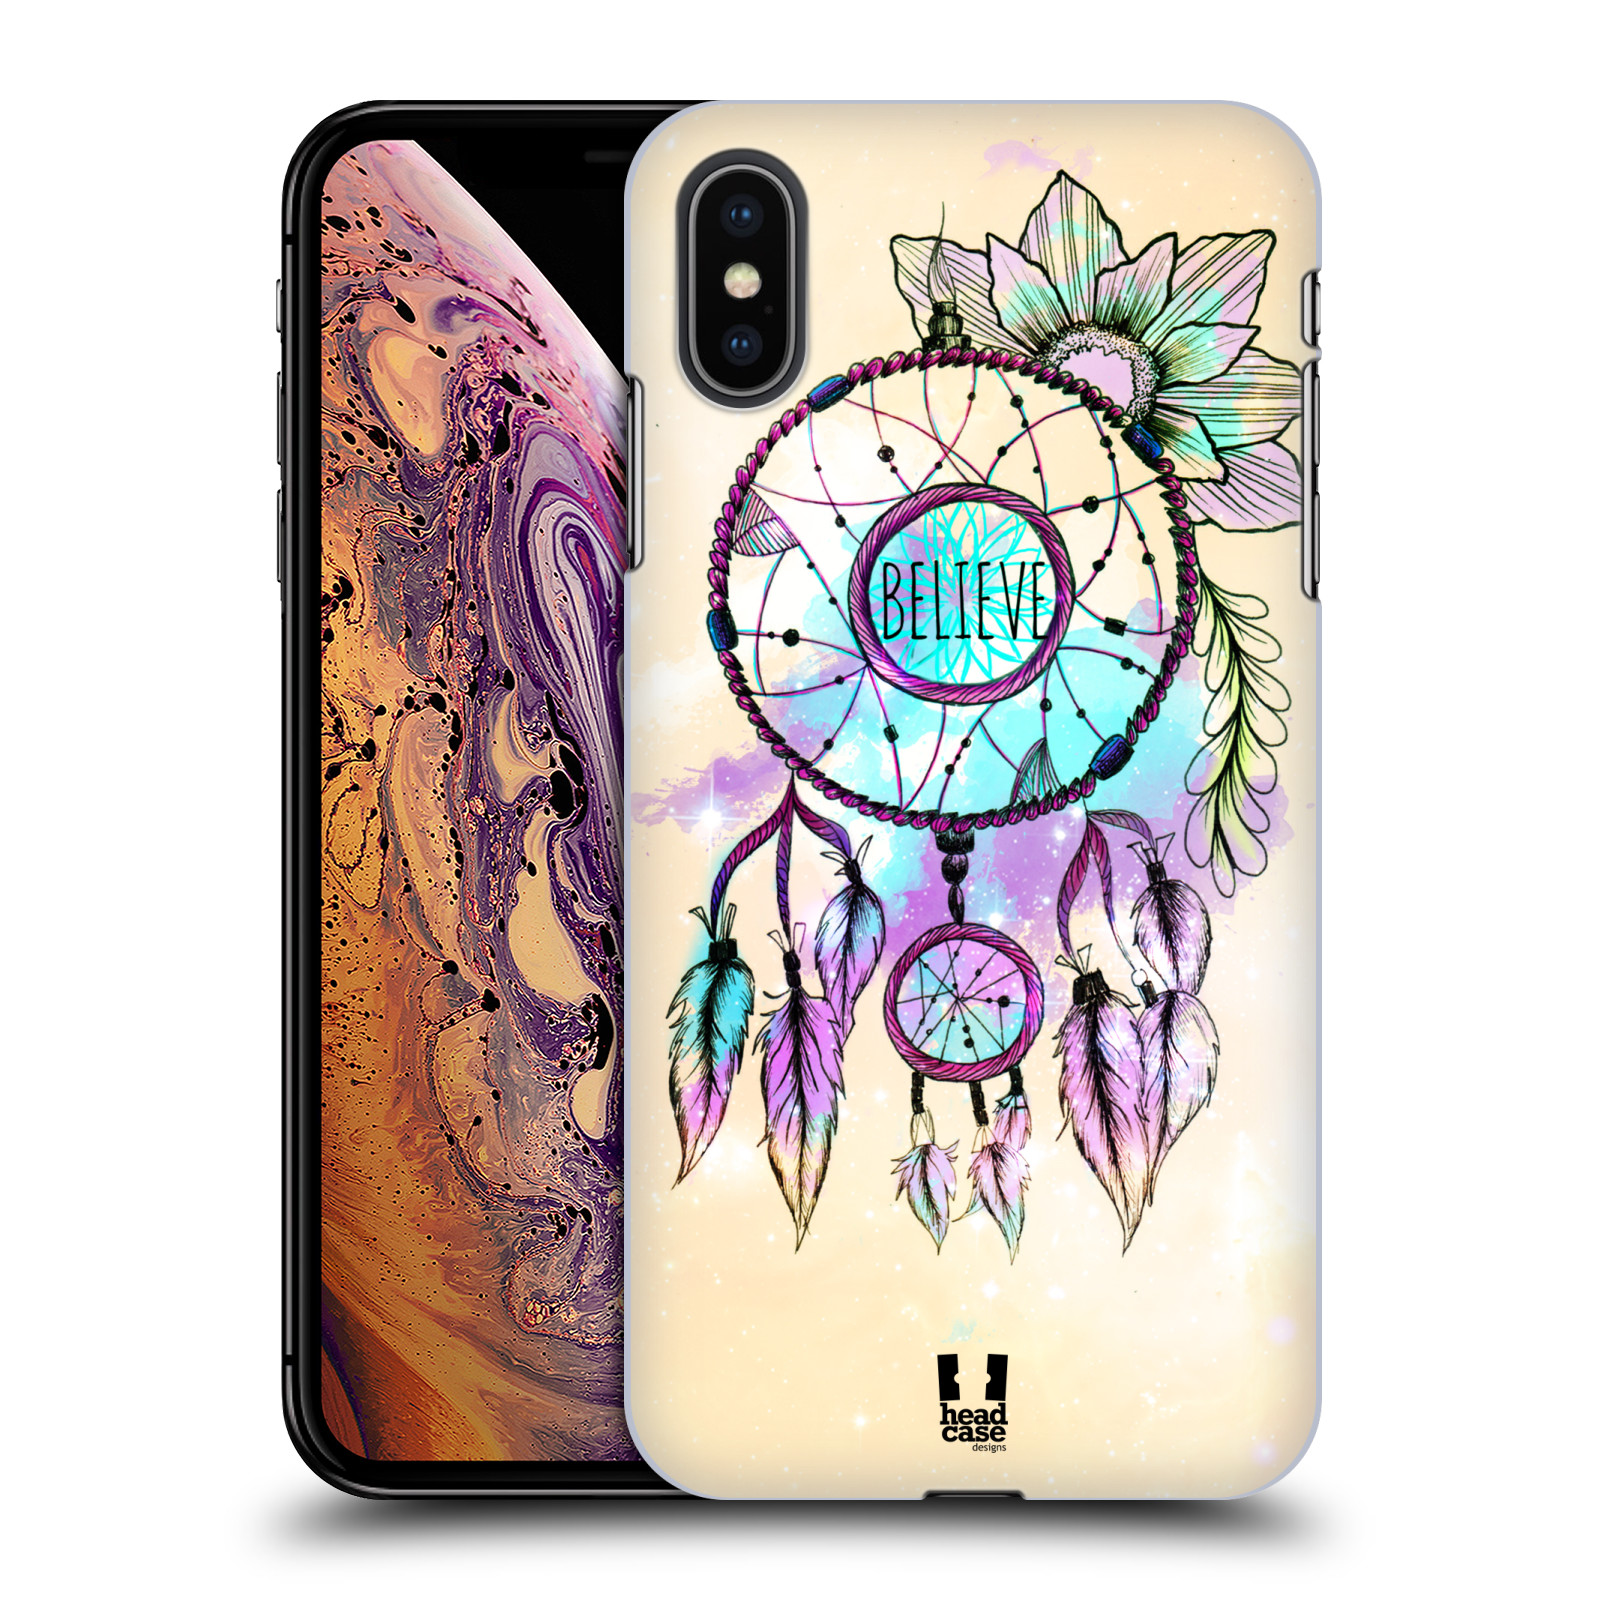 Plastové pouzdro na mobil Apple iPhone XS Max - Head Case - MIX BELIEVE